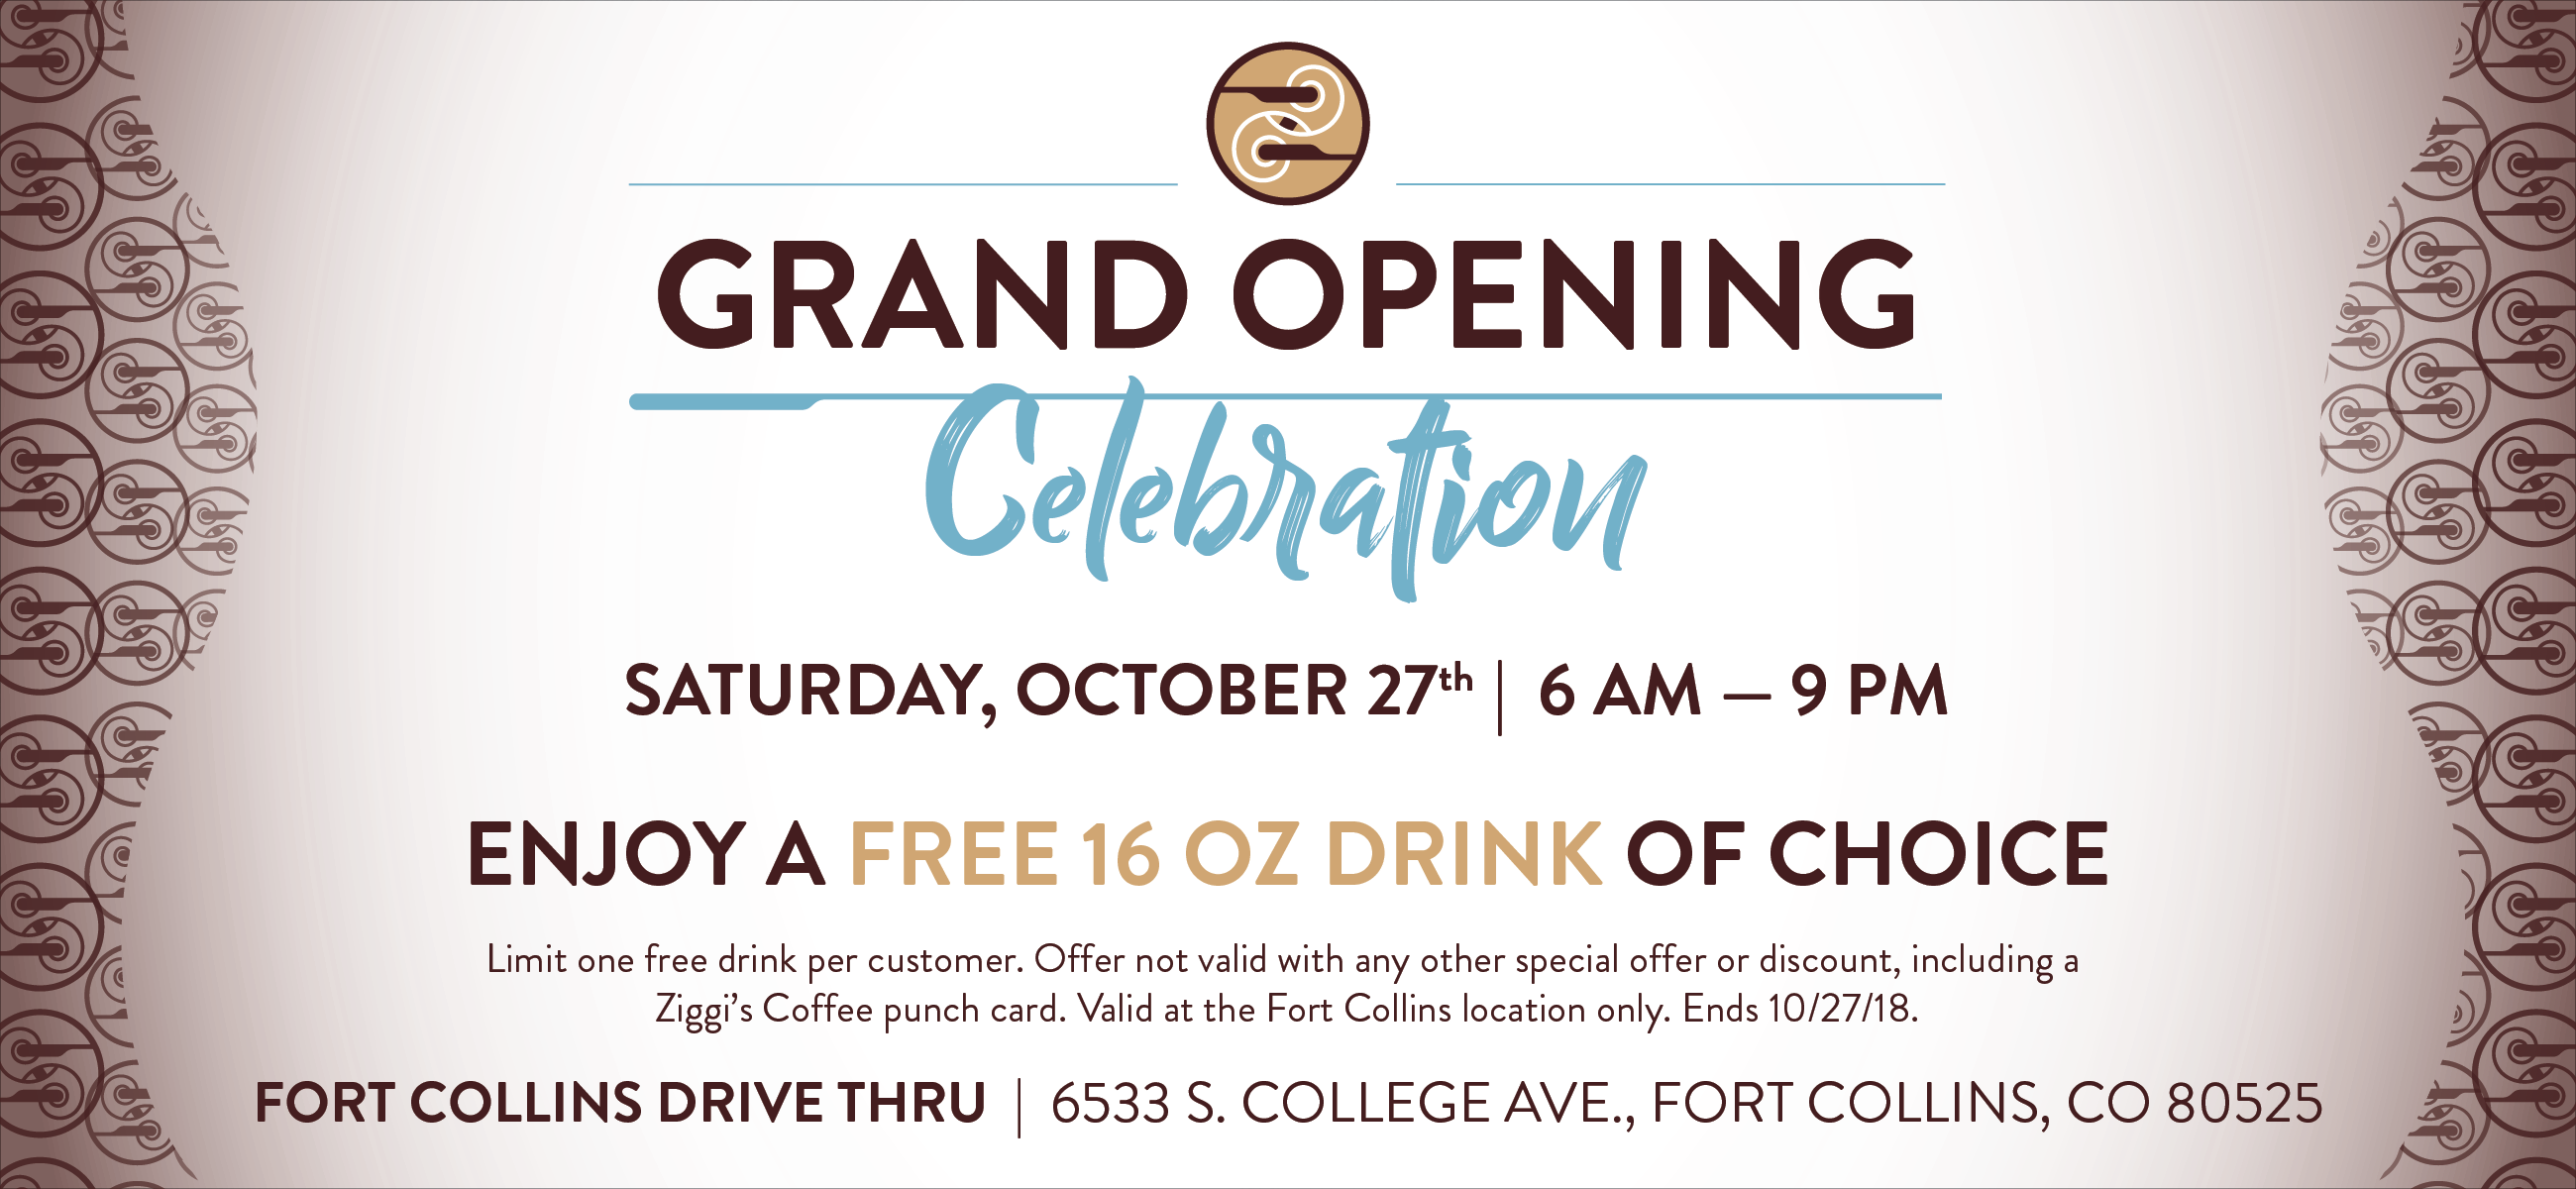 Ziggi's Coffee Fort Collins Grand Opening Event | Saturday, October 27th | 6am-9pm